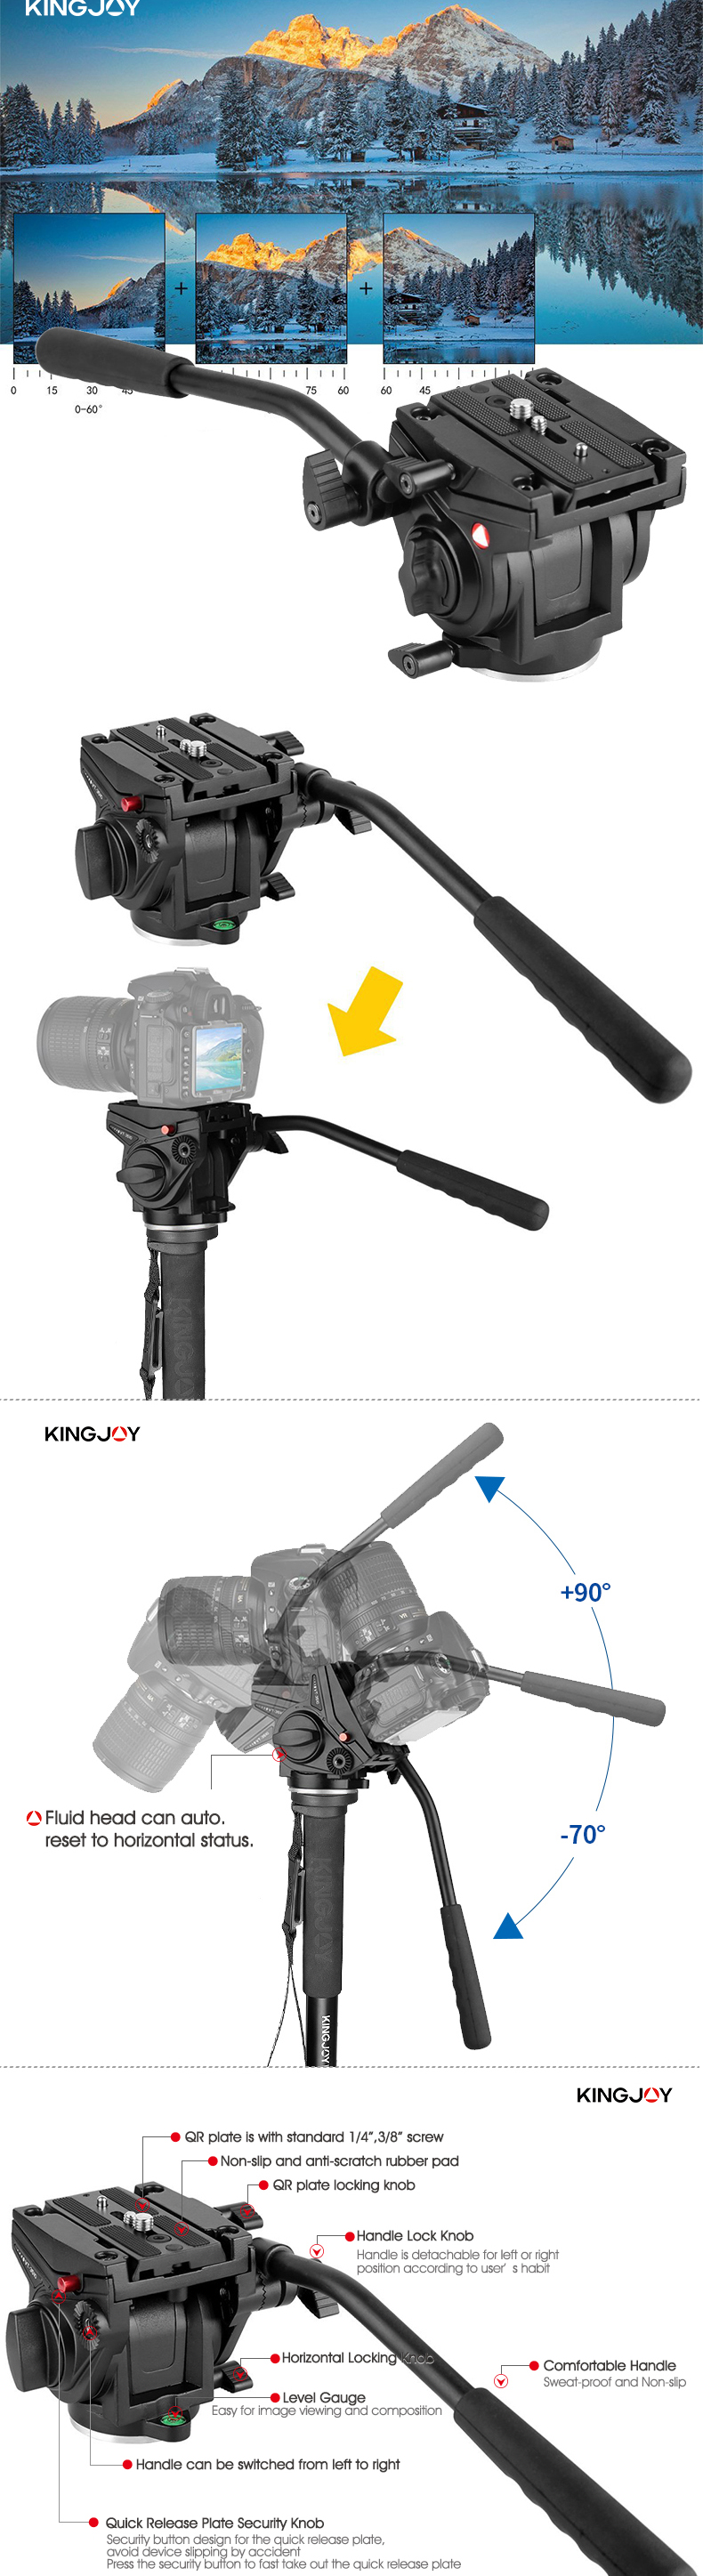 KINGJOY minipod tripod monopod for camera shooting angle can be adjusted freely